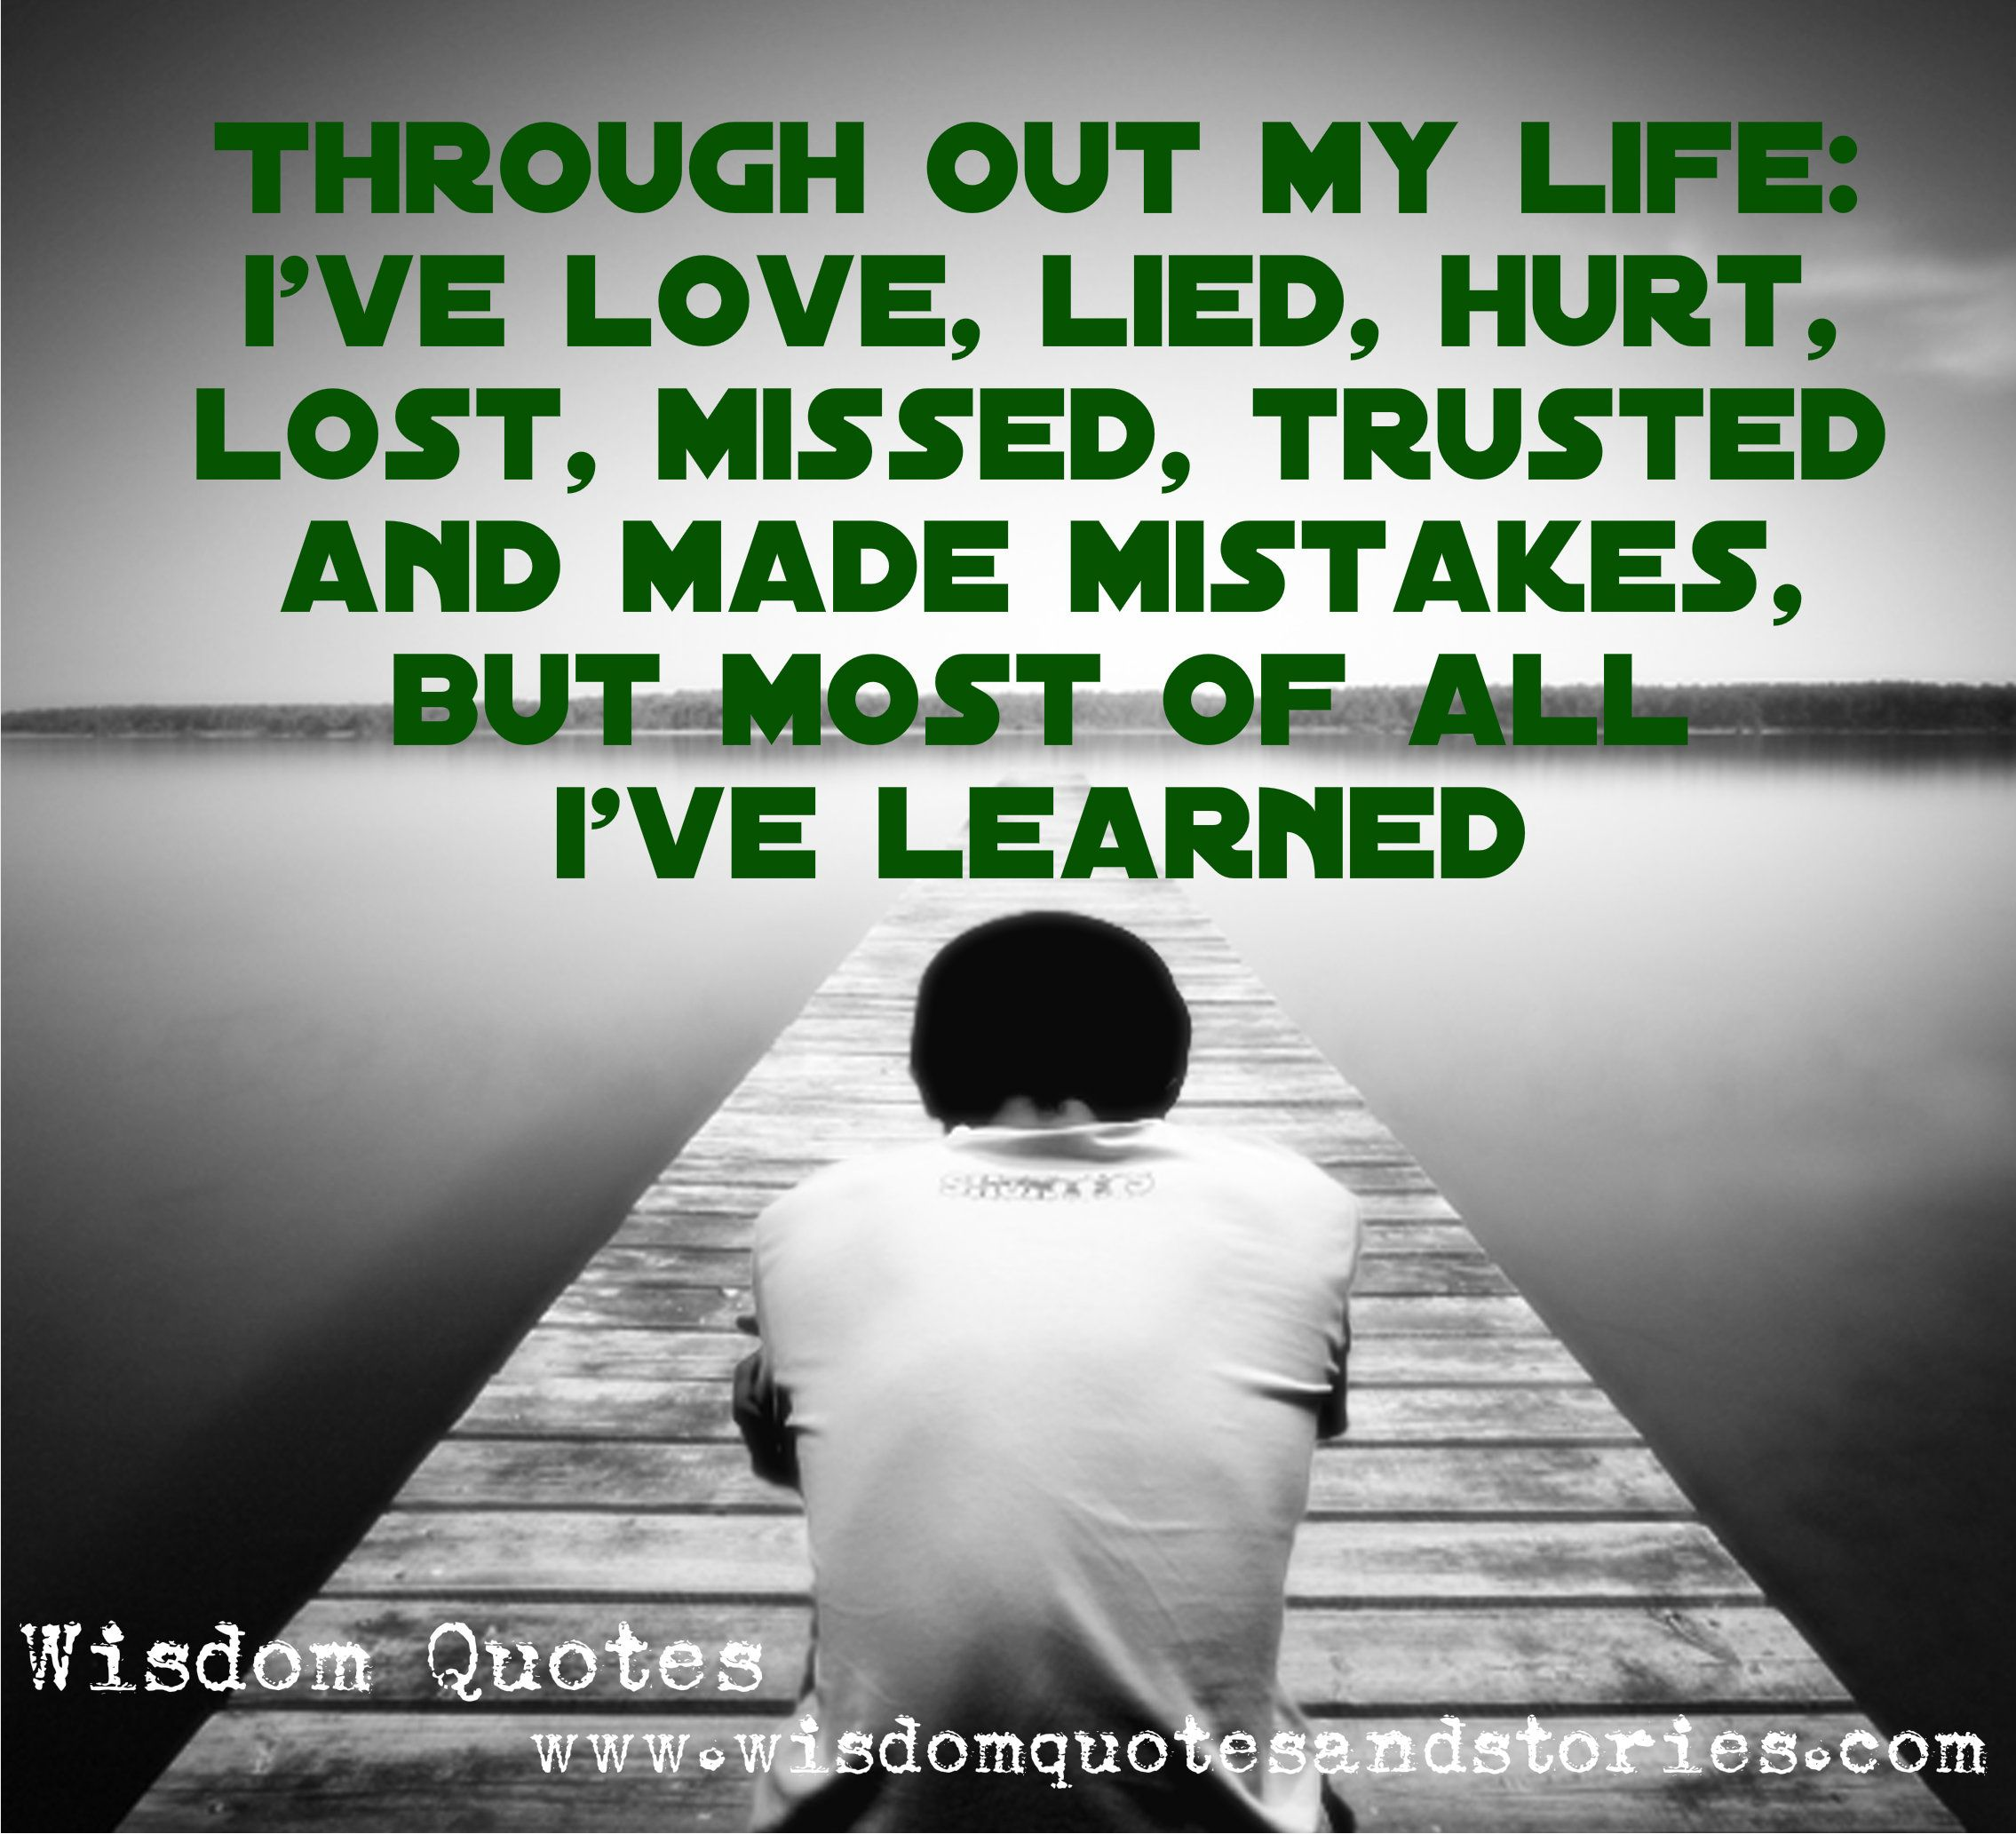 Throughout my life I have loved lied hurt lost missed